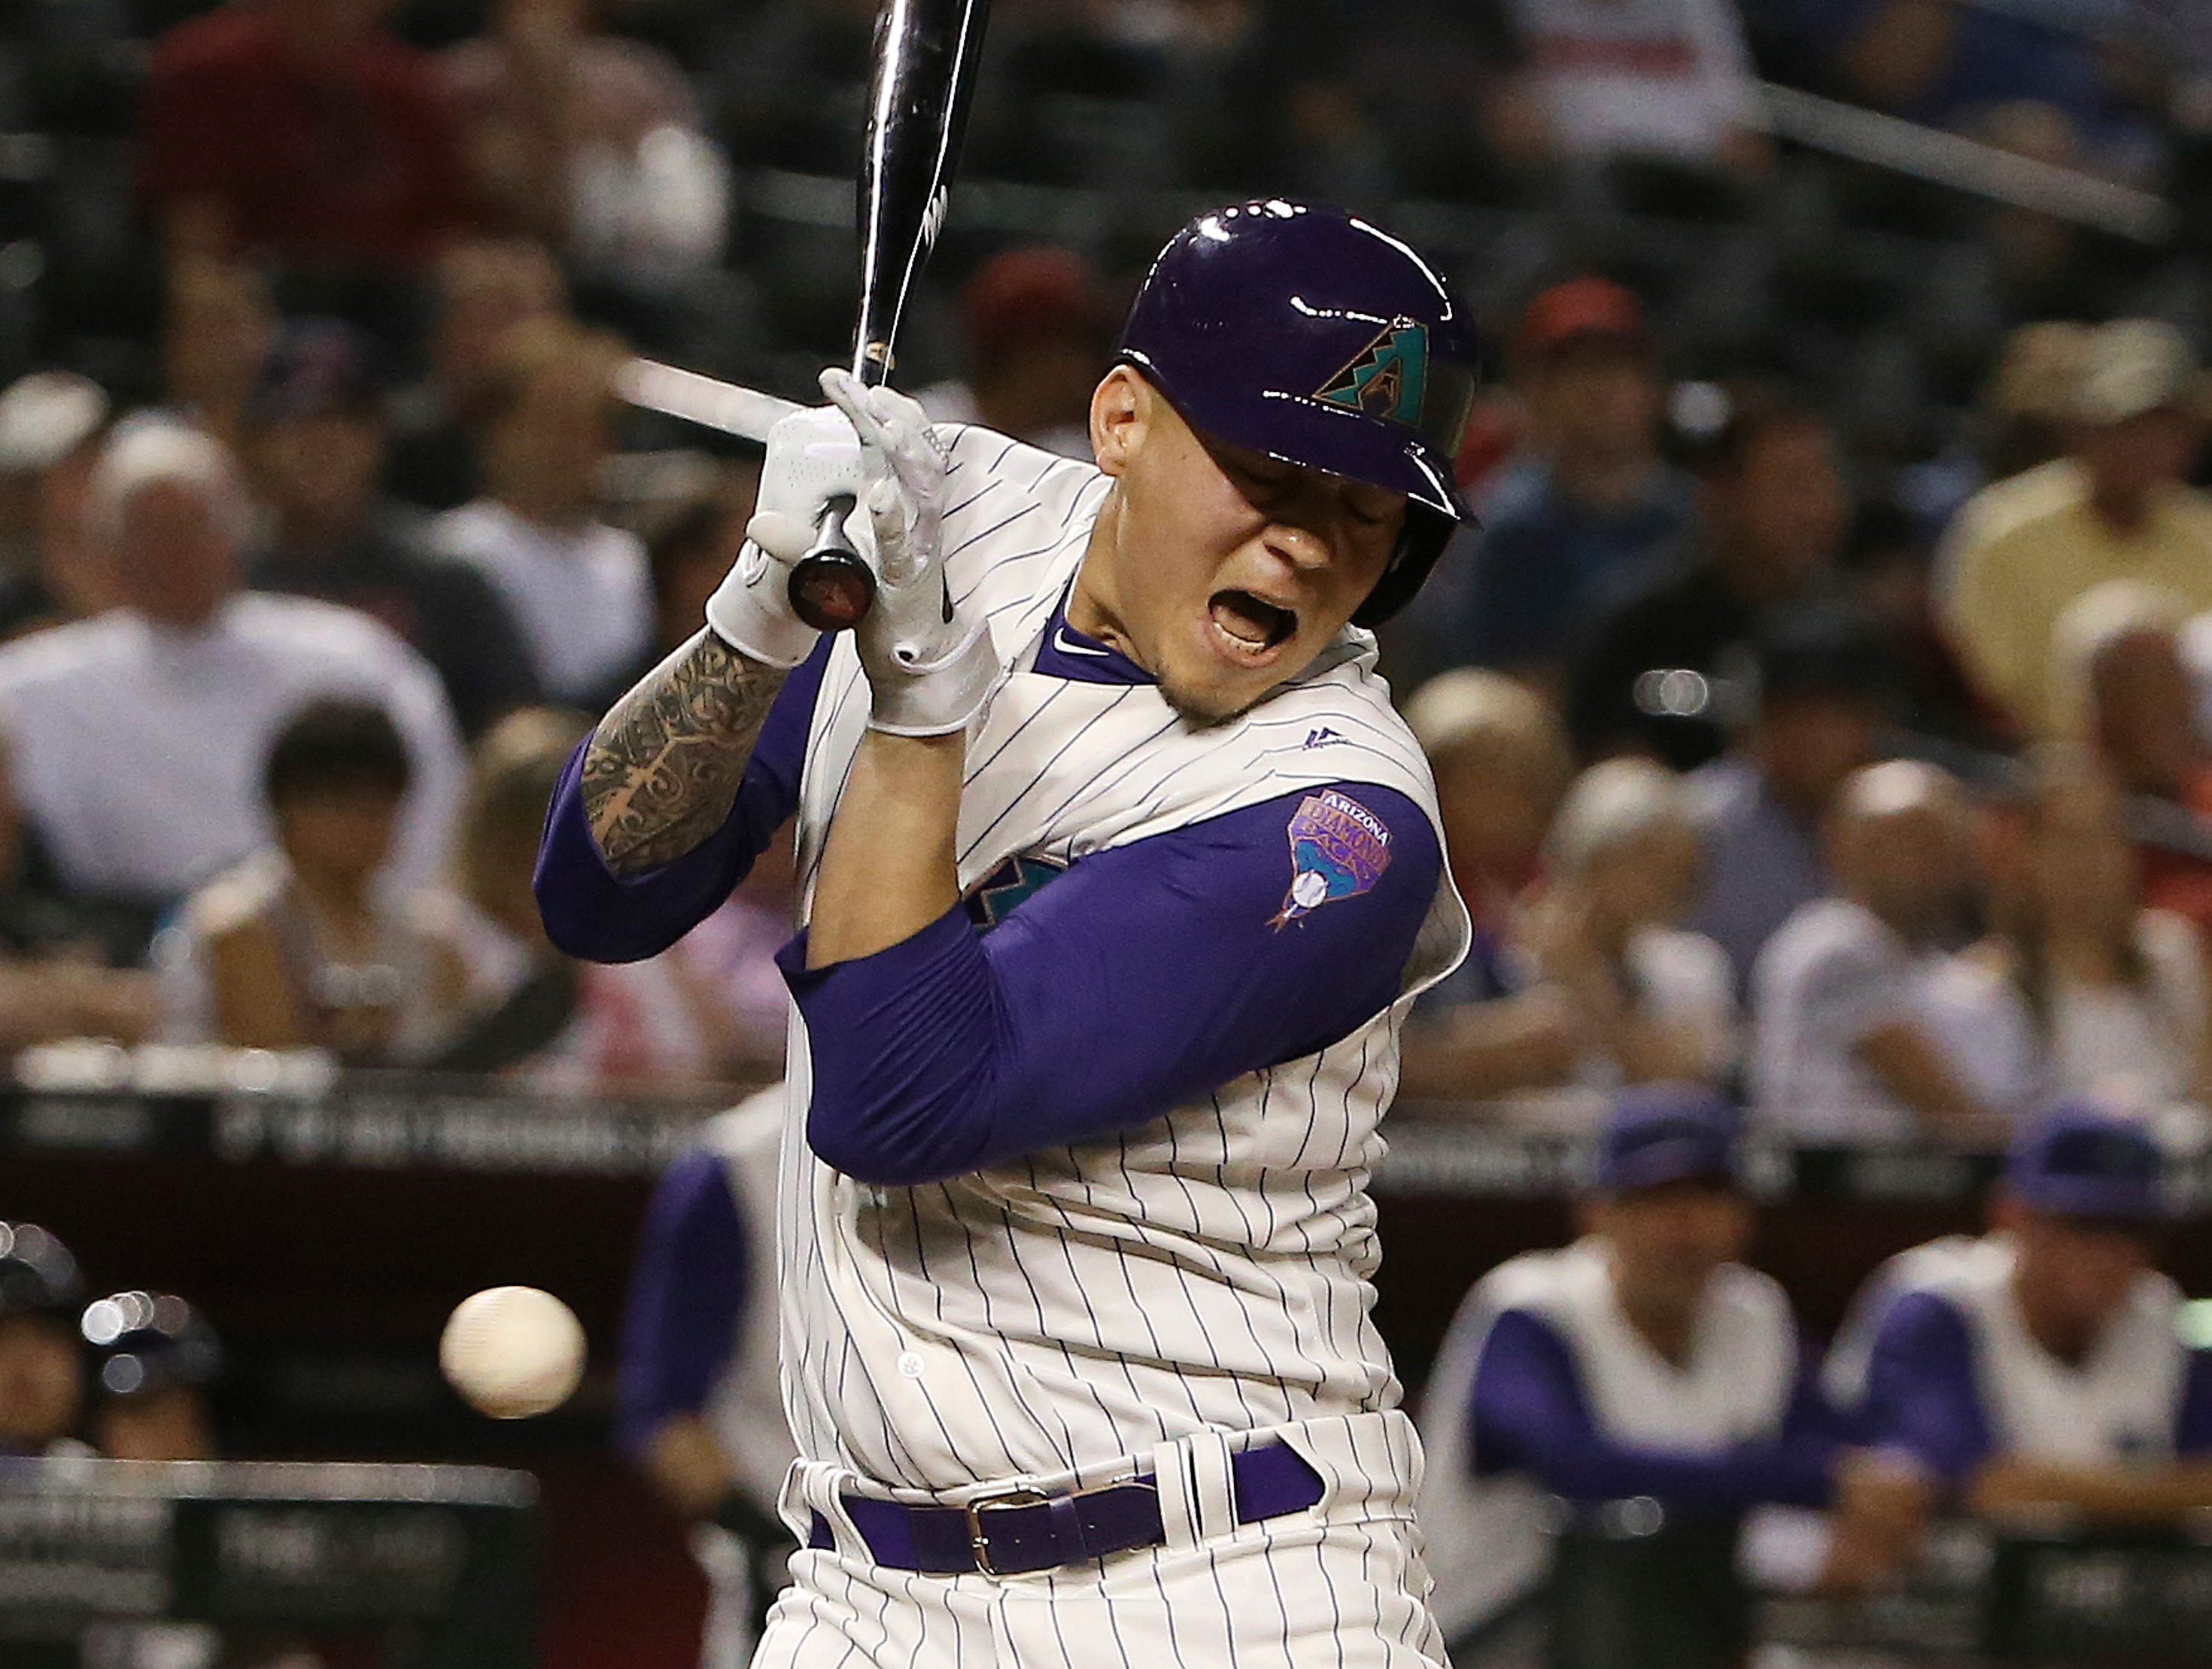 Arizona Diamondbacks' Wilmer Flores grimaces after being hit by a pitch thrown by Atlanta Braves starter Mike Soroka during the sixth inning of a baseball game Thursday, May 9, 2019, in Phoenix. (AP Photo/Ross D. Franklin)